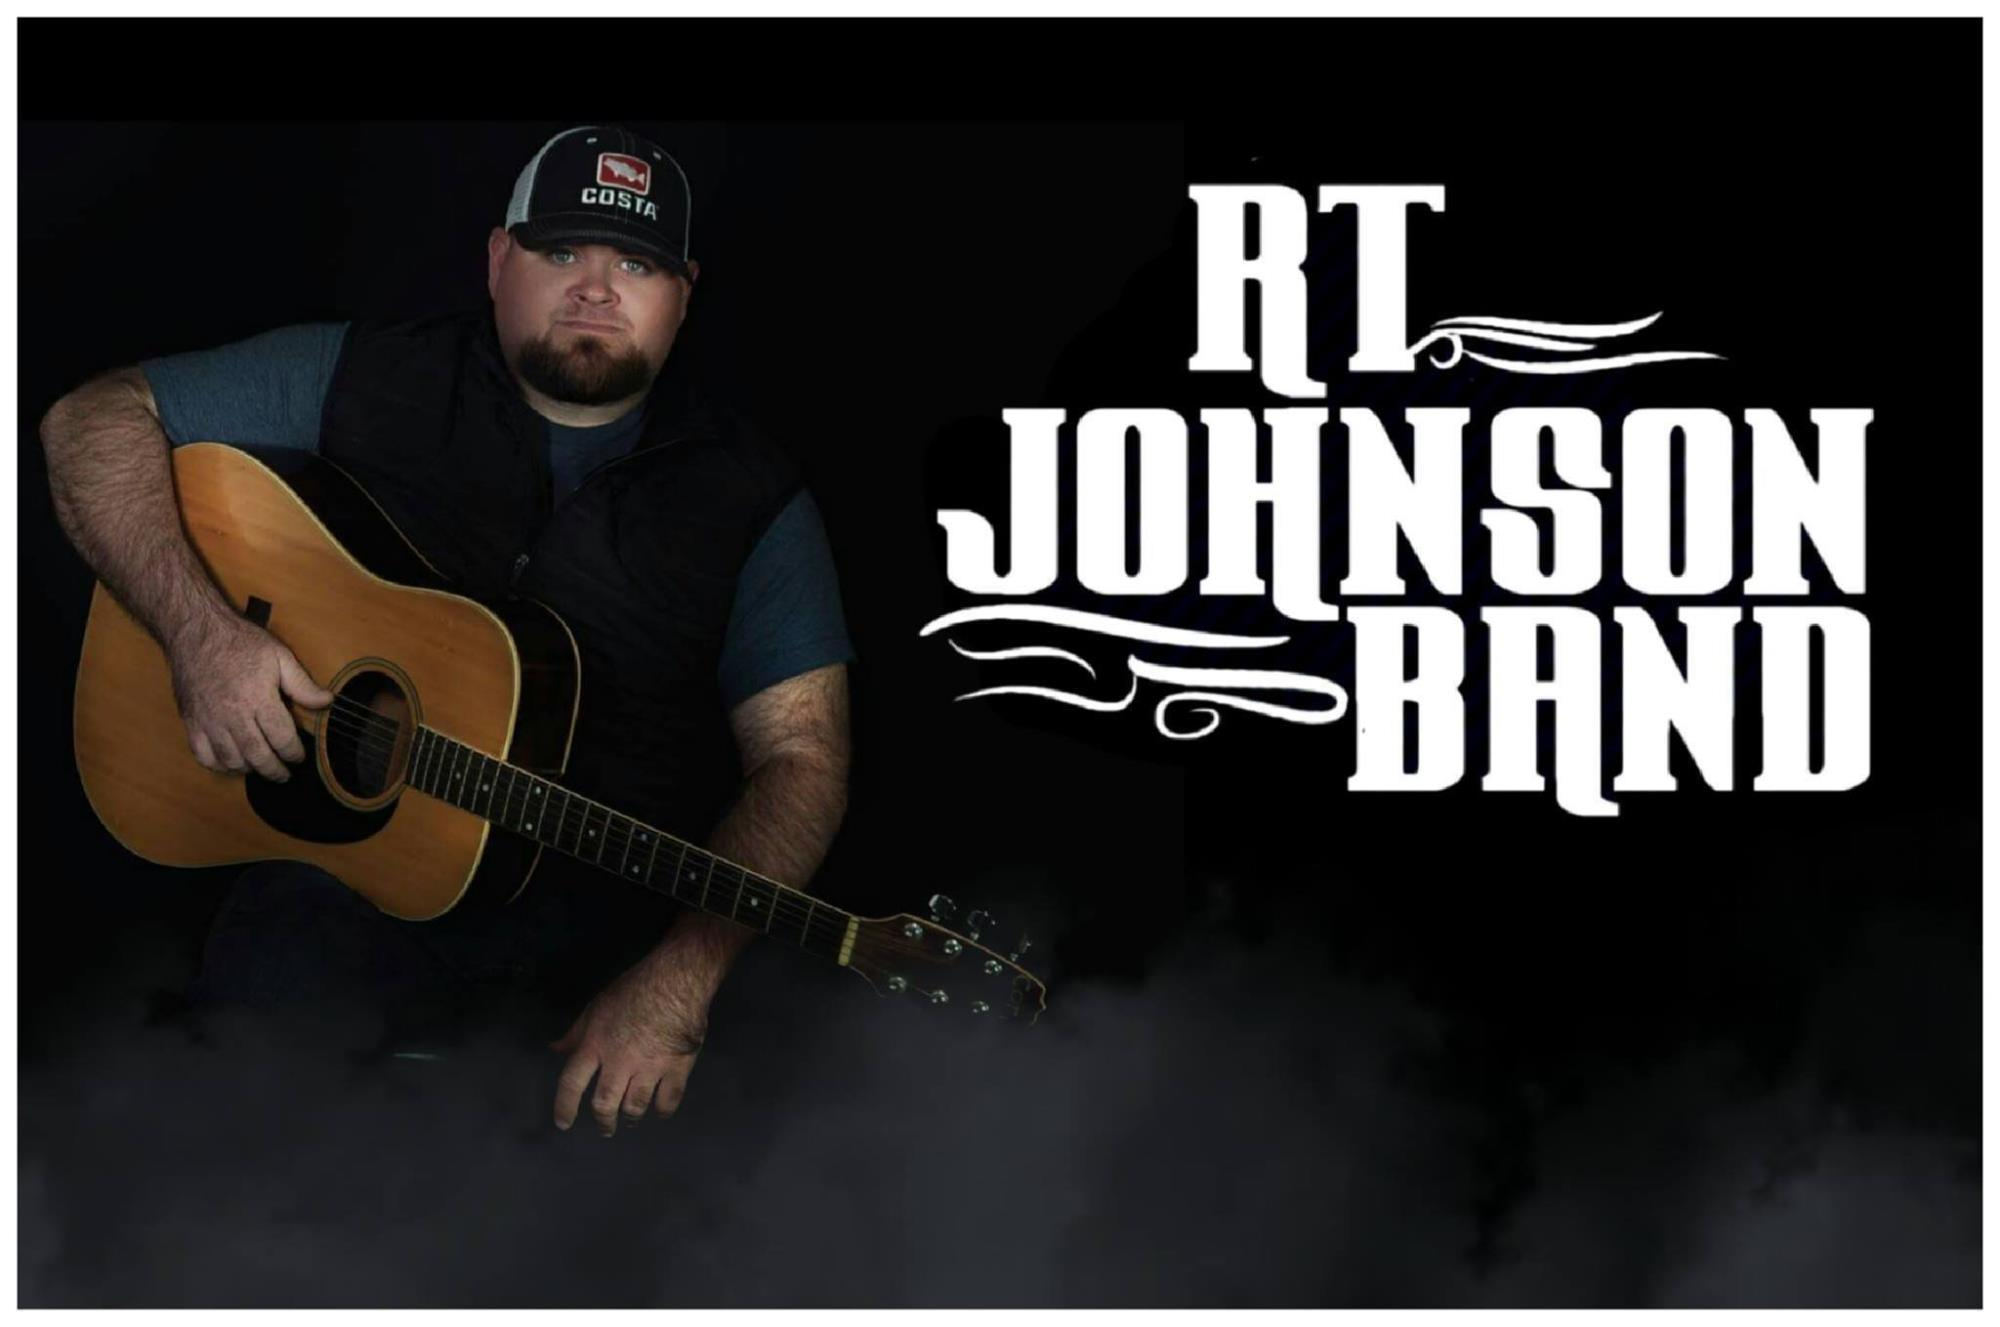 rt_johnson_band